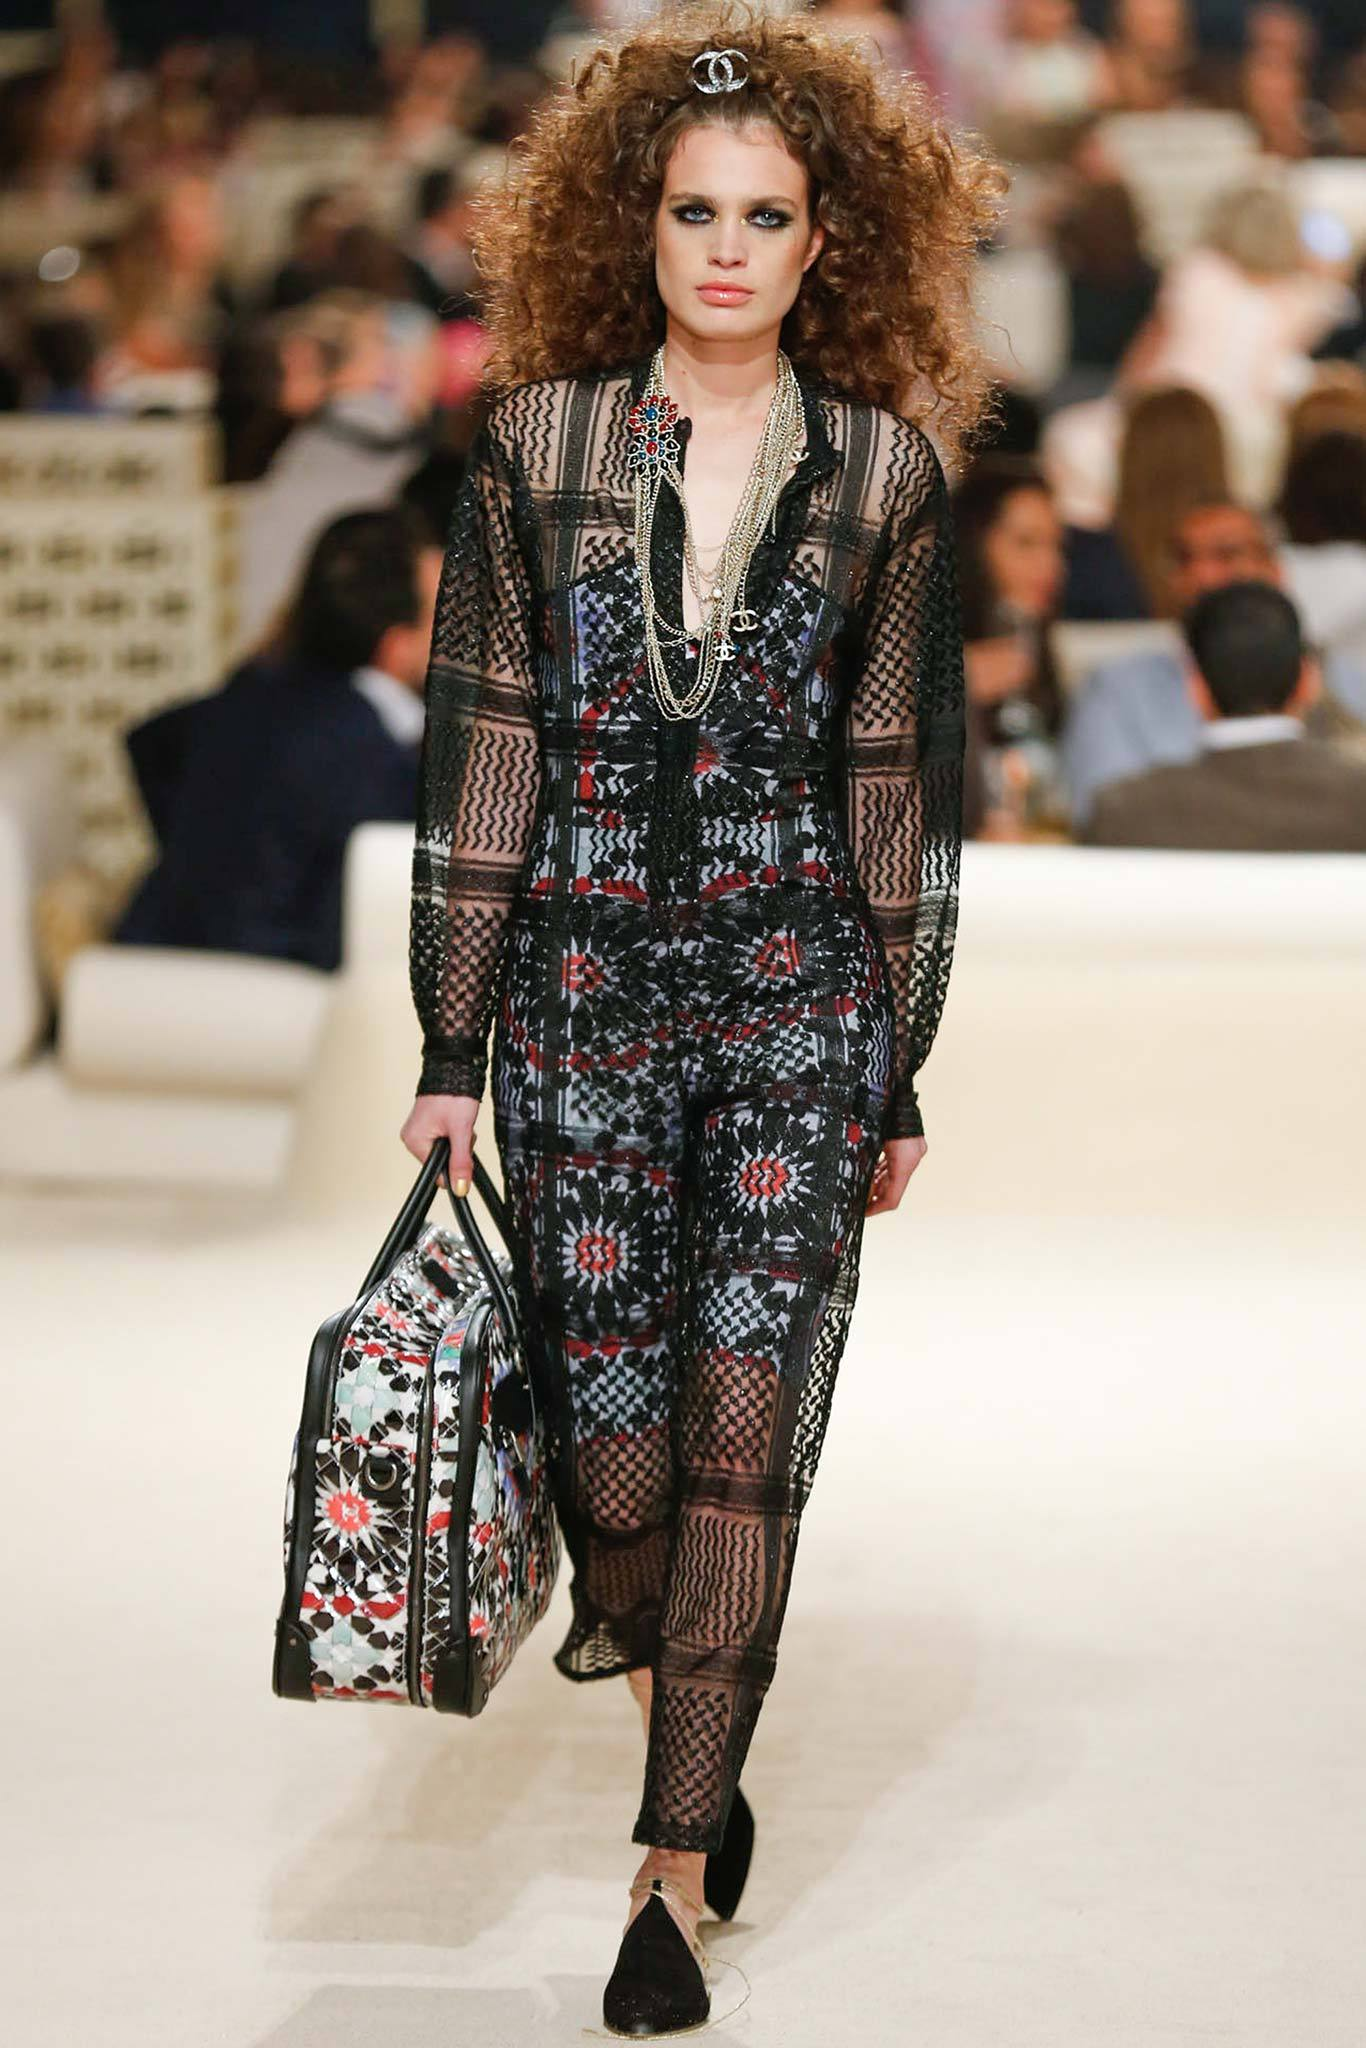 Constanza Saravia | Chanel Cruise 2015 (Photography: Gianni Pucci / Indigitalimages.com via Style.com)